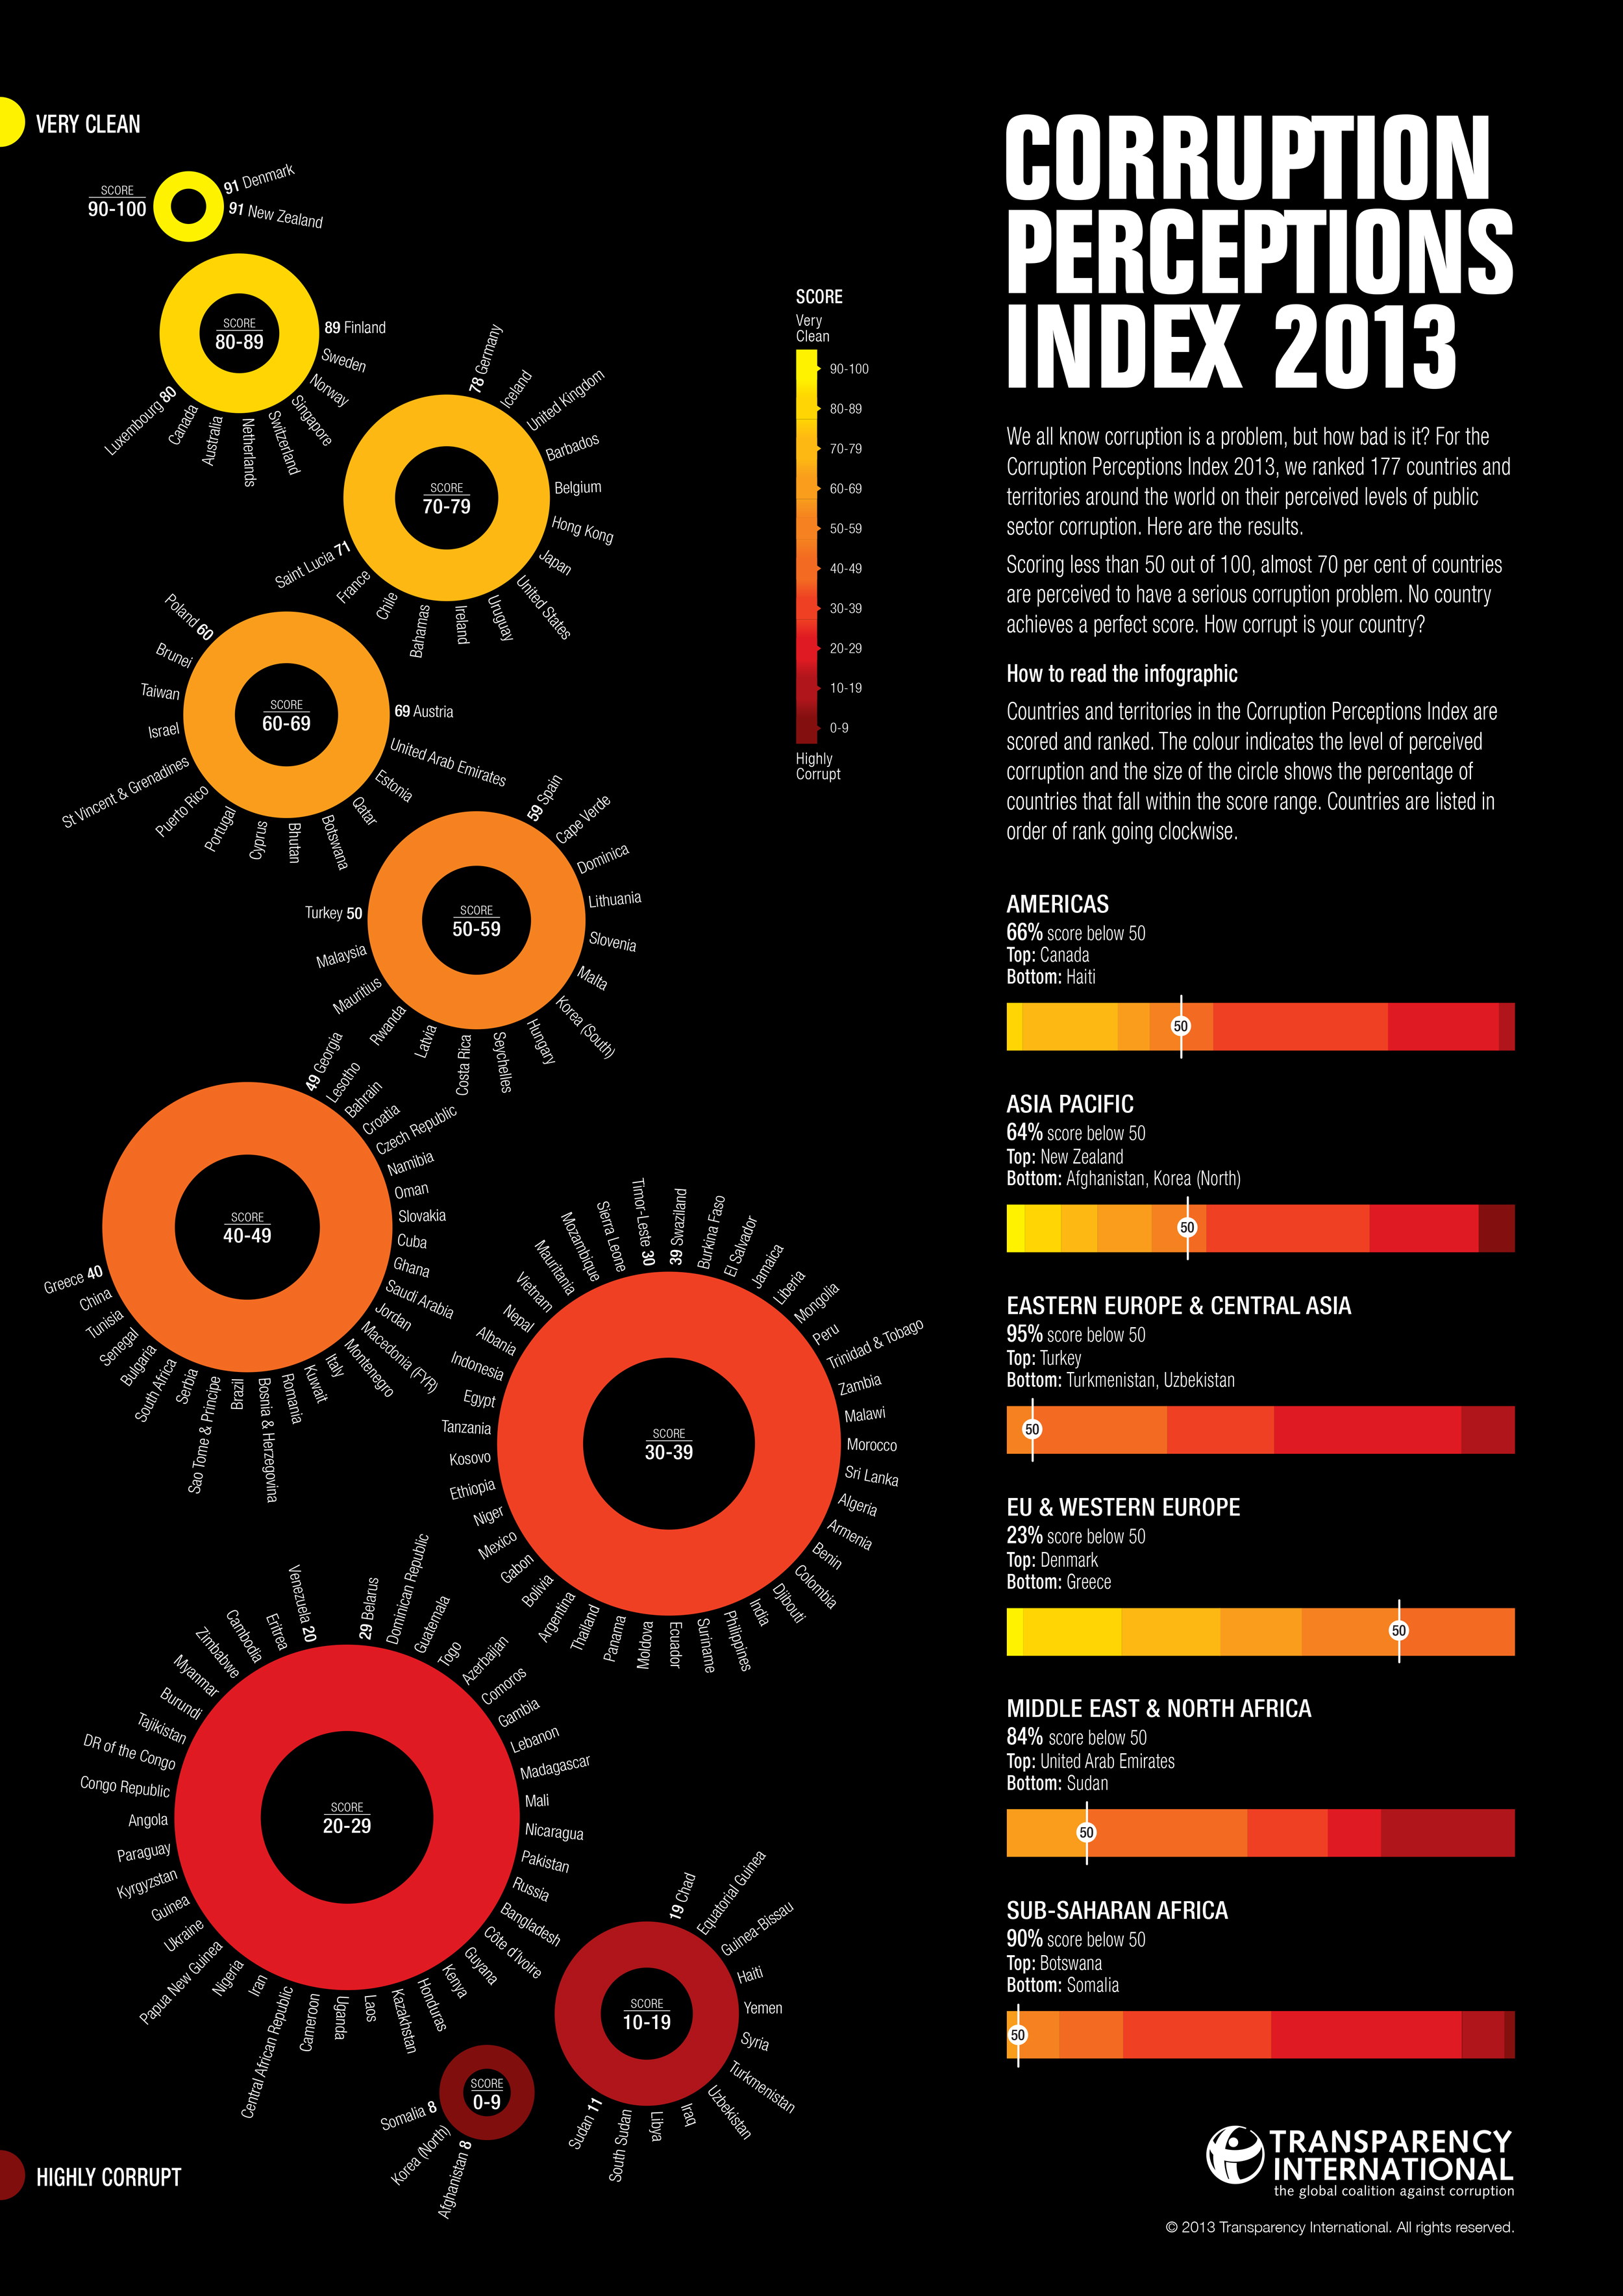 http://www.mining.com/wp-content/uploads/2013/12/CPI2013_global-infographic.jpg